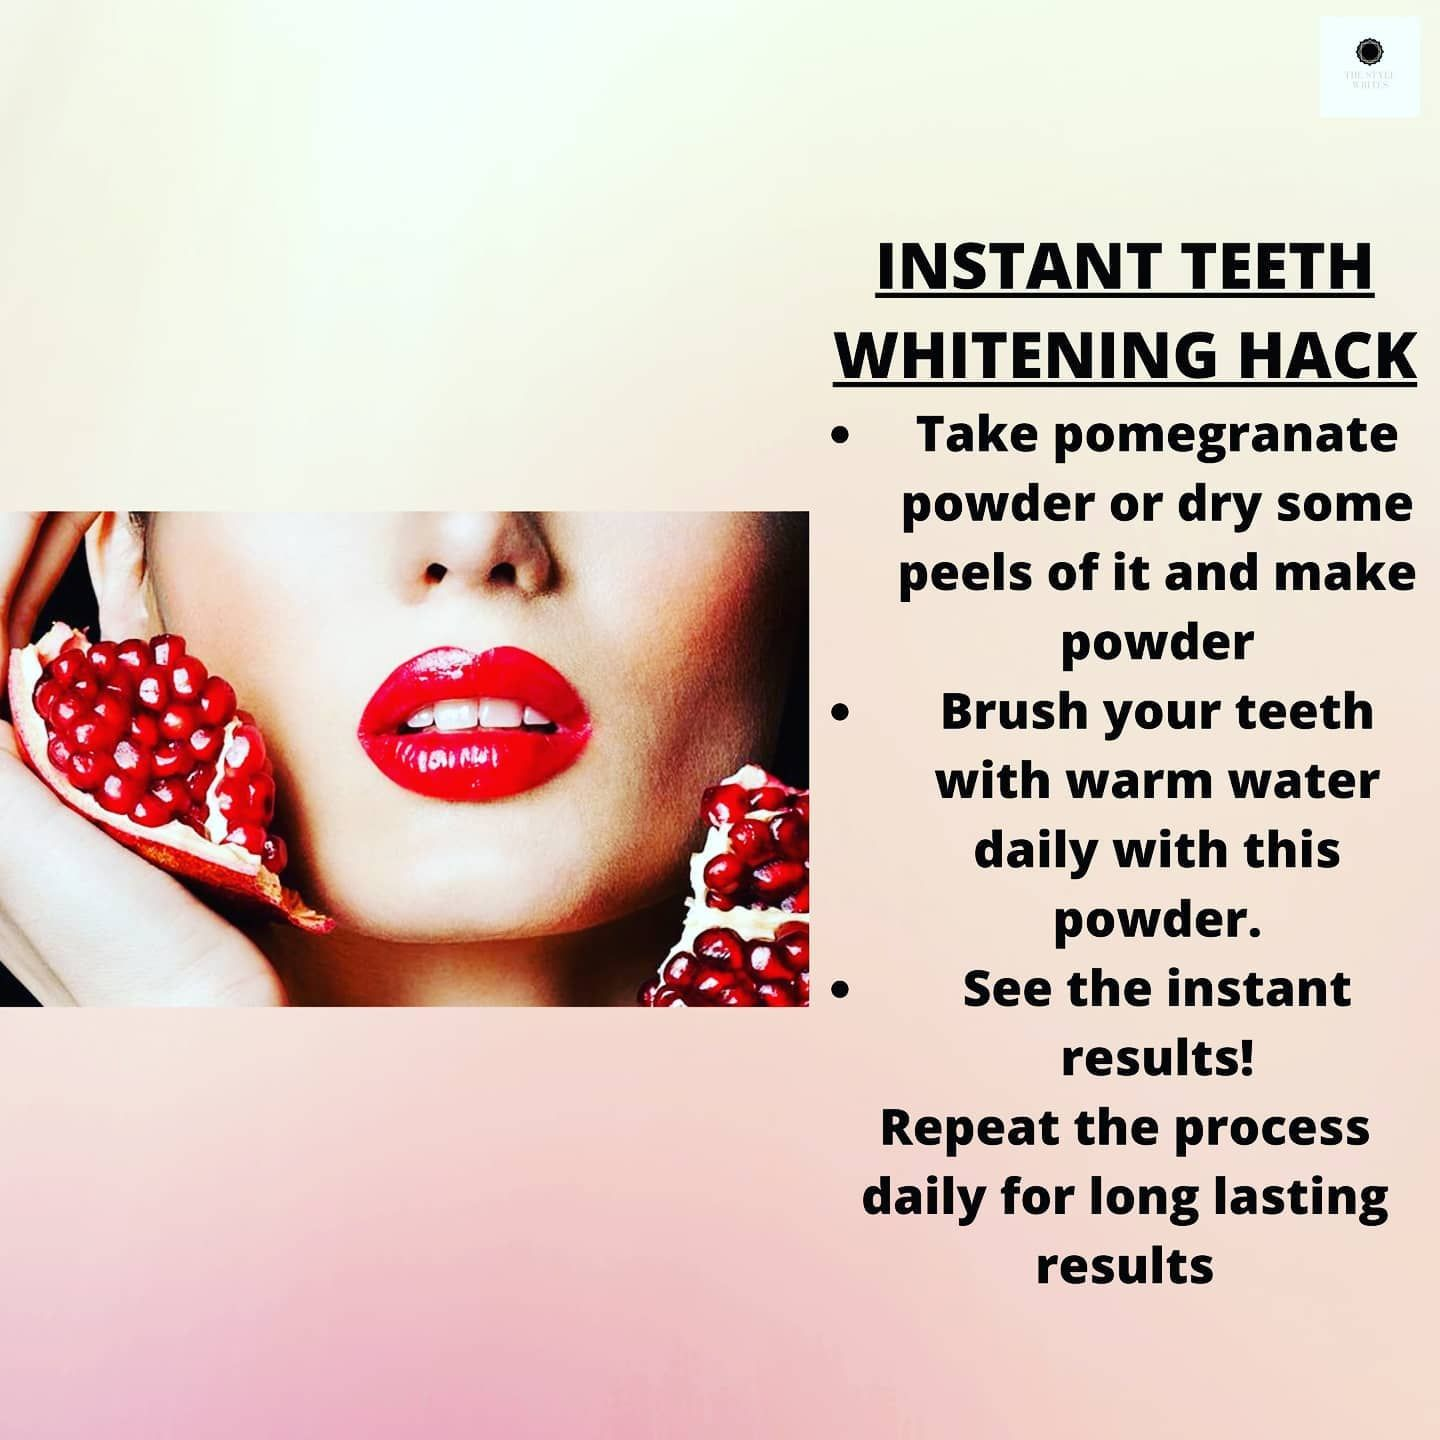 Even teeth whitening is a part of our routine!! #skinwhitening #skincare #teeth #teethwhitening #pomegranate #skincareremedies #skincalls #homeremedies